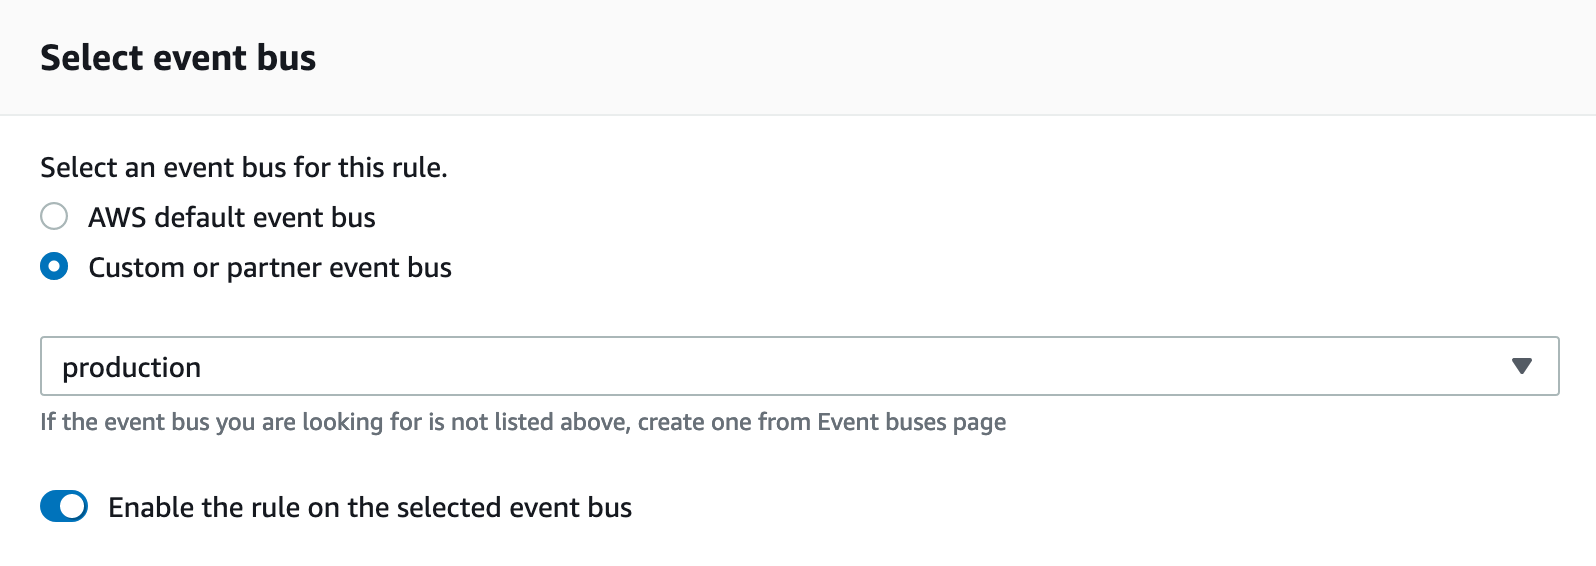 In Select event bus, the Custom or partner event bus option is selected. Production is selected from the dropdown. The Enable the rule on the selected event bus option is selected.